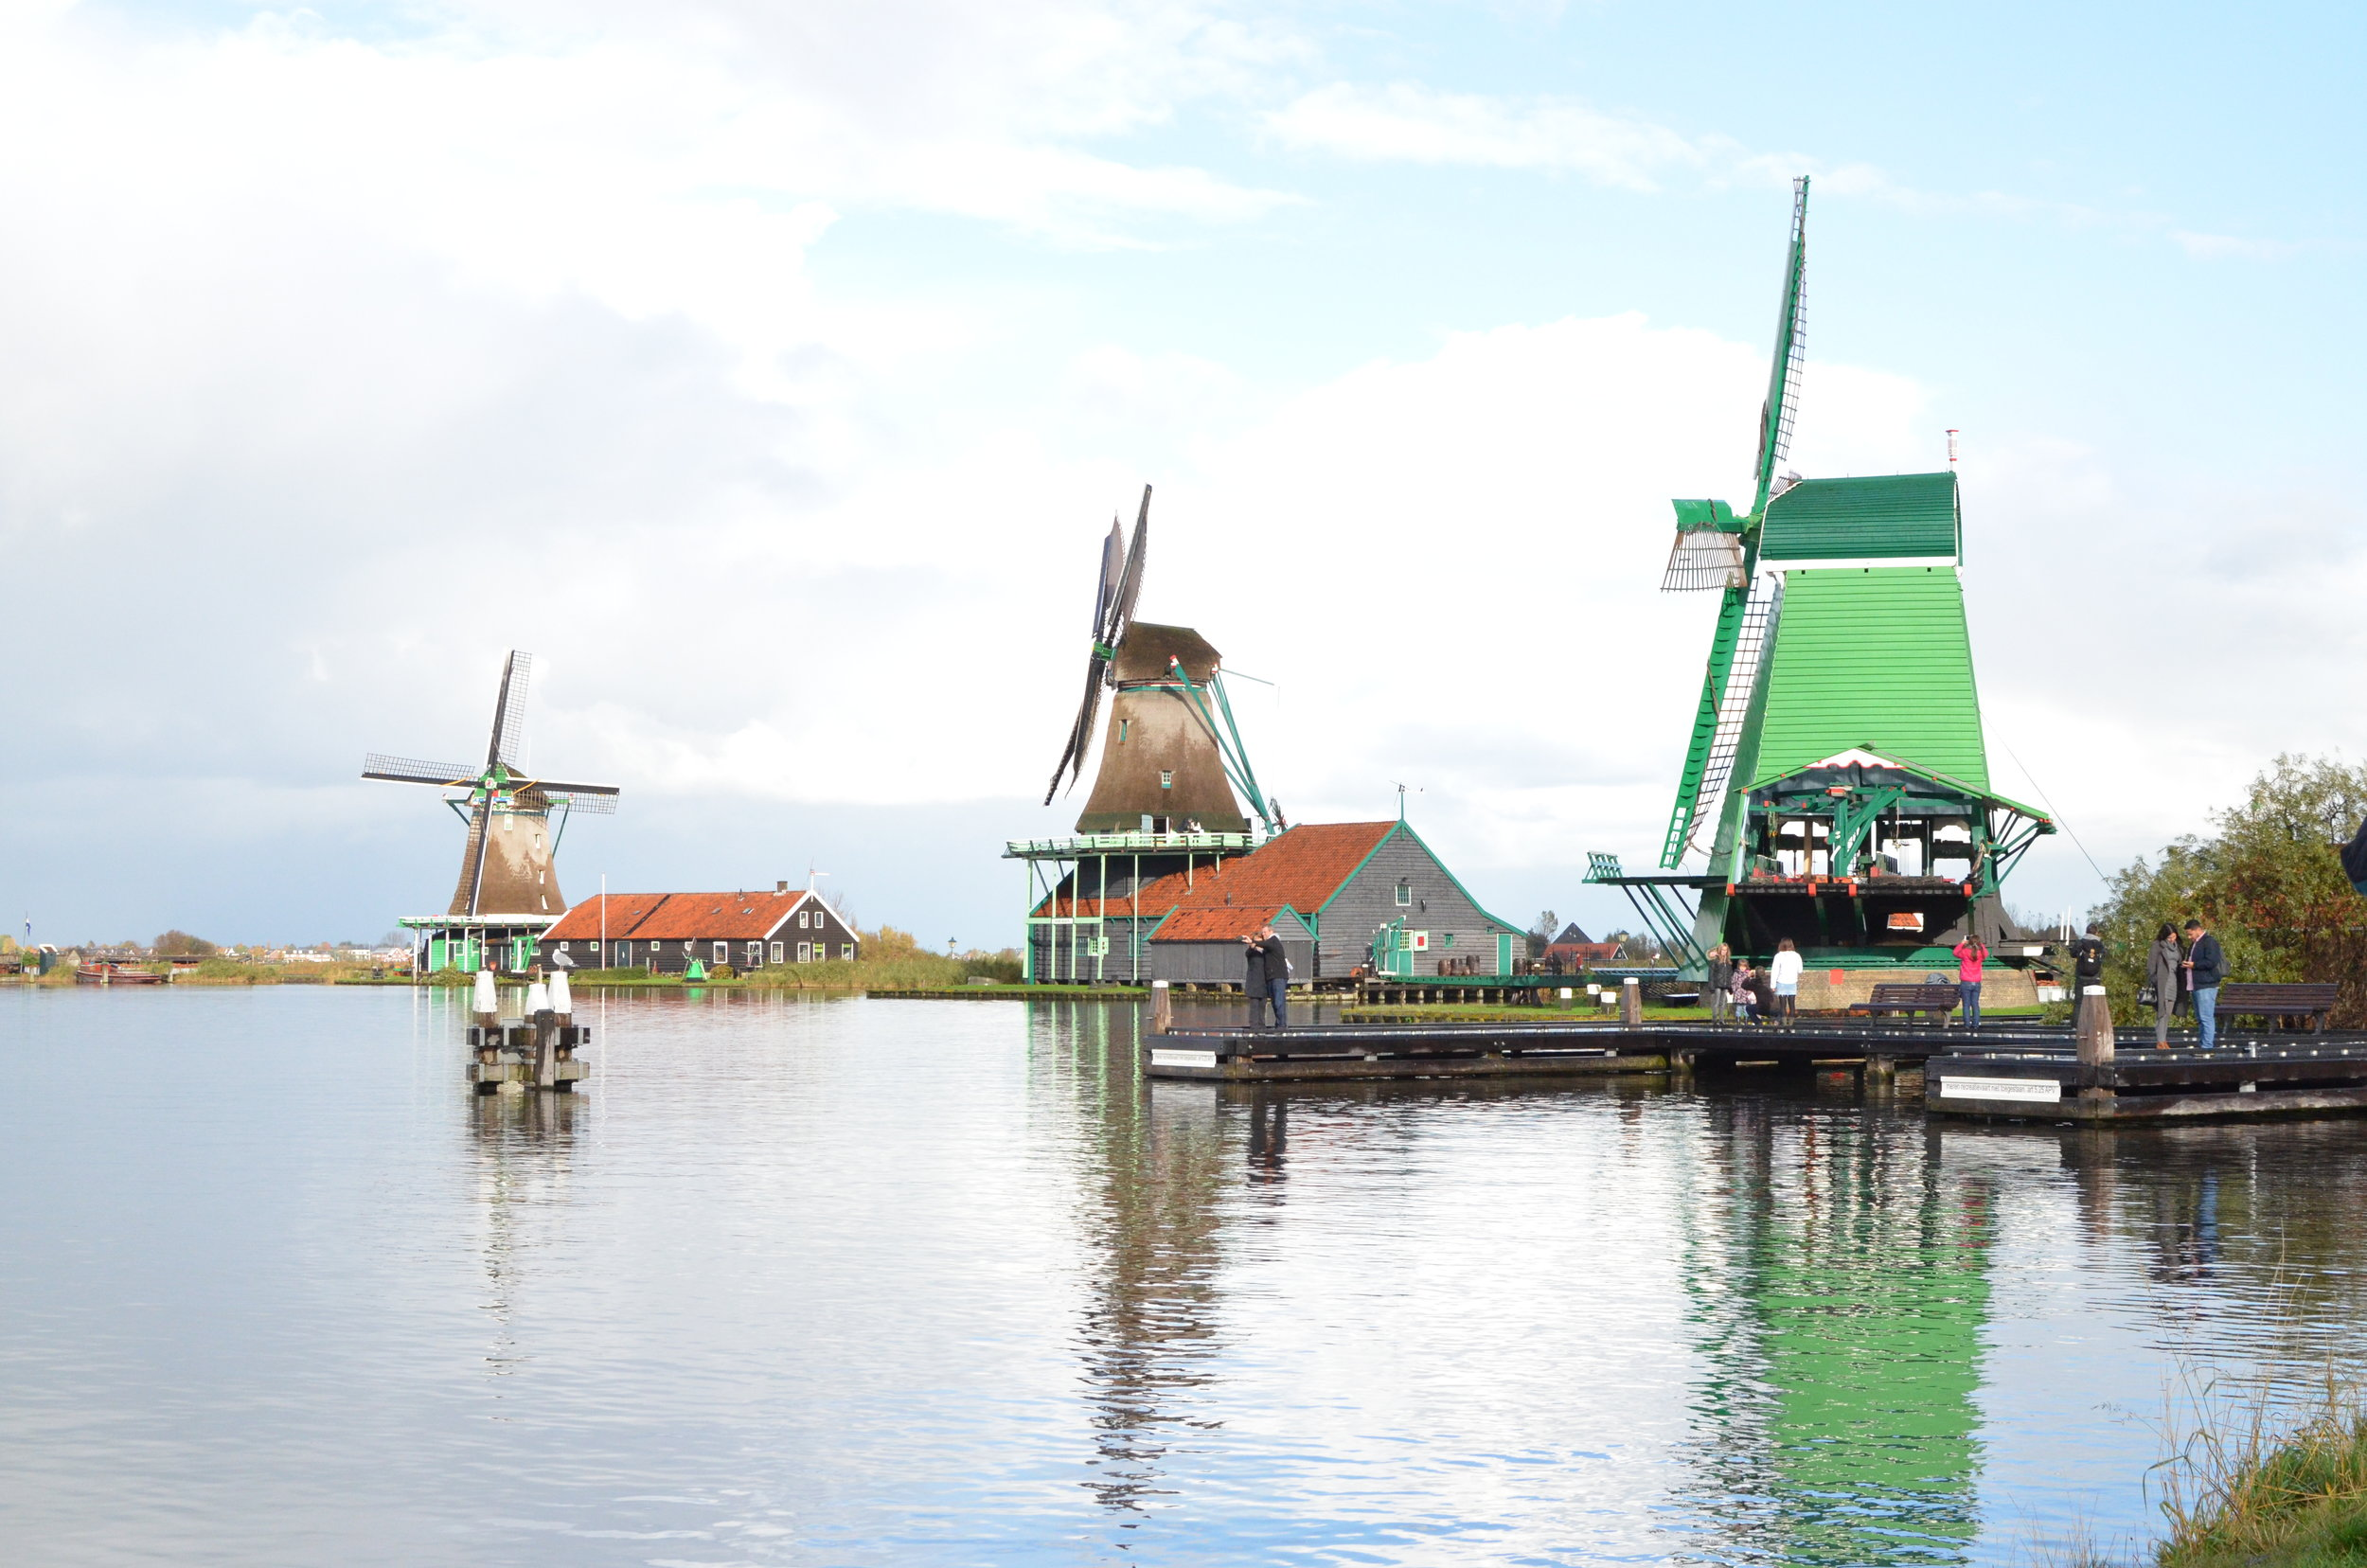 The windmills of Zaanse Schans